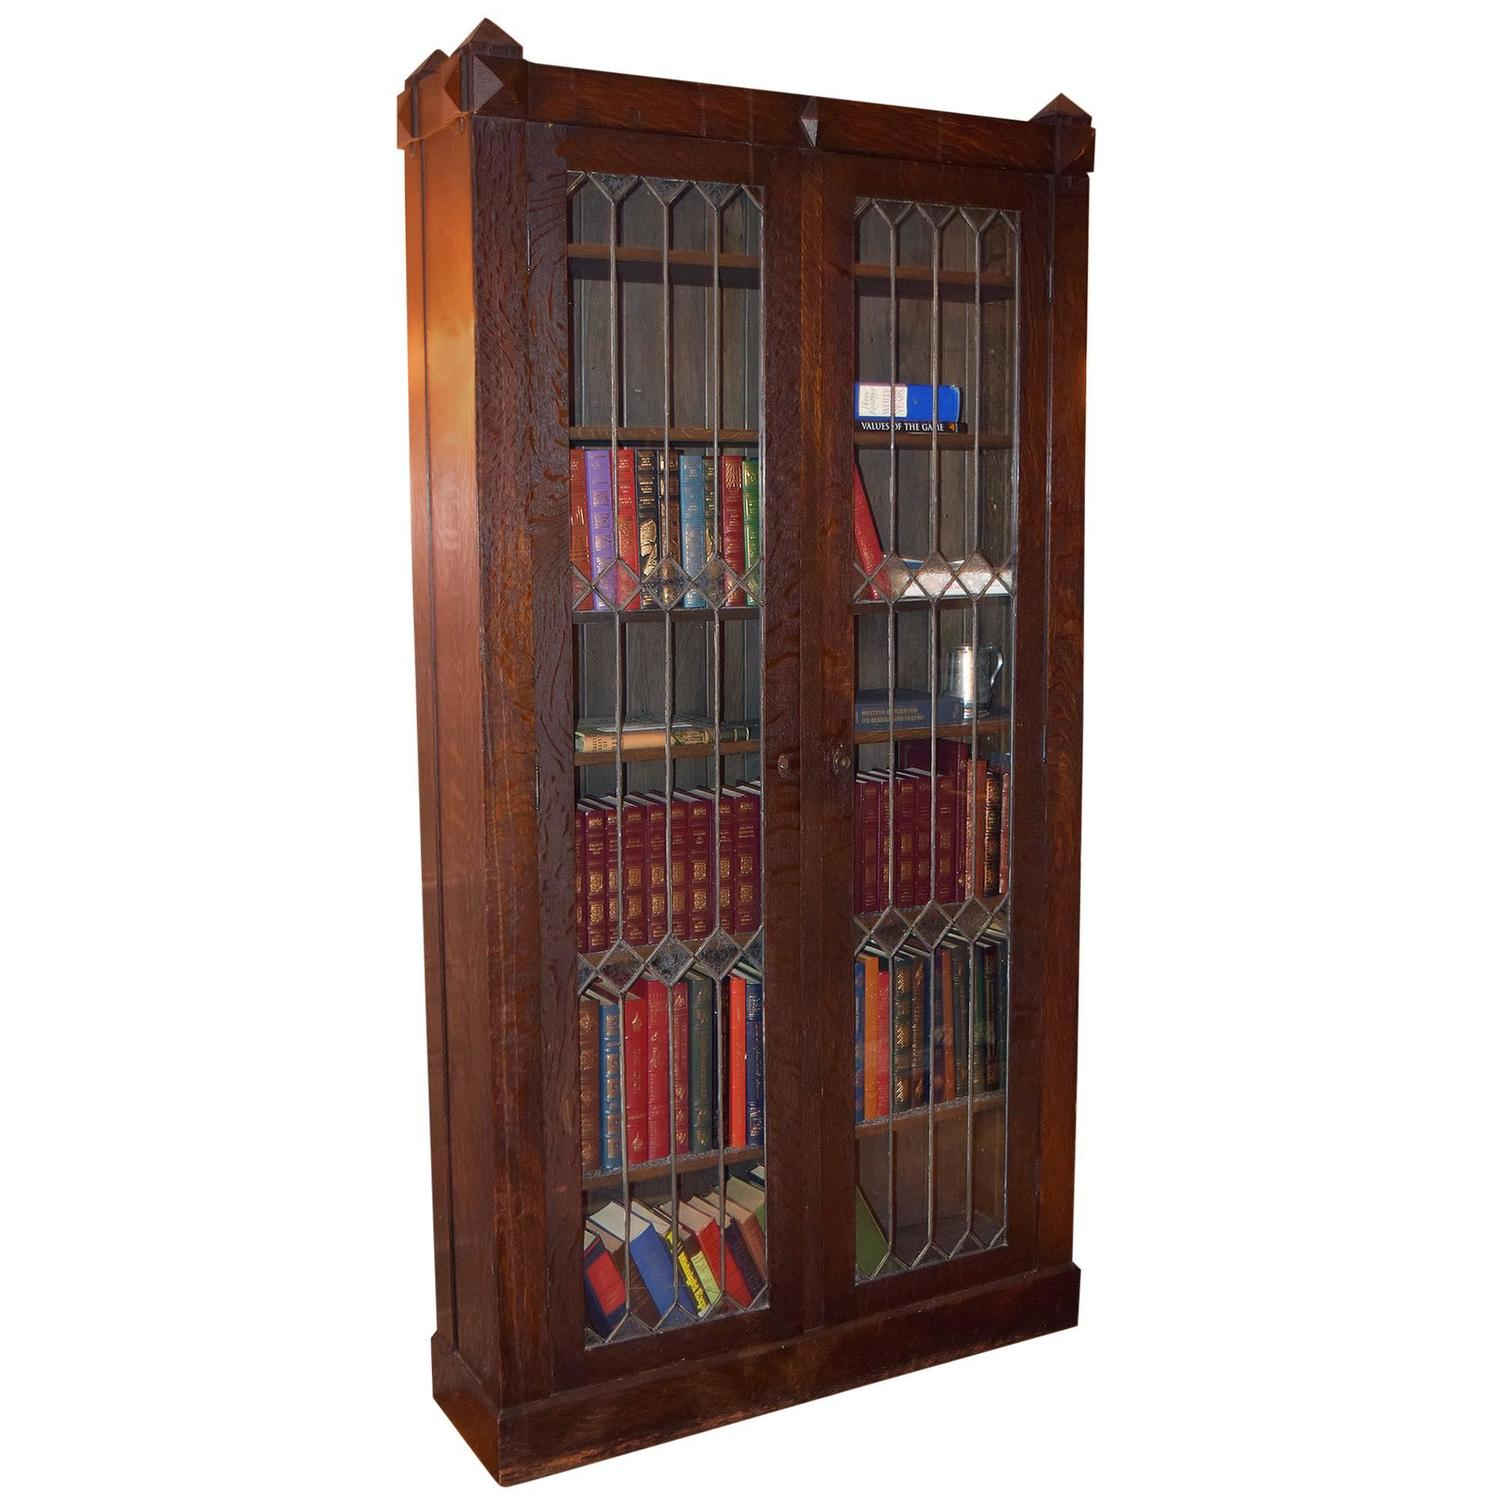 Arts and crafts style oak bookcase with leaded glass doors for Arts and crafts bookshelf